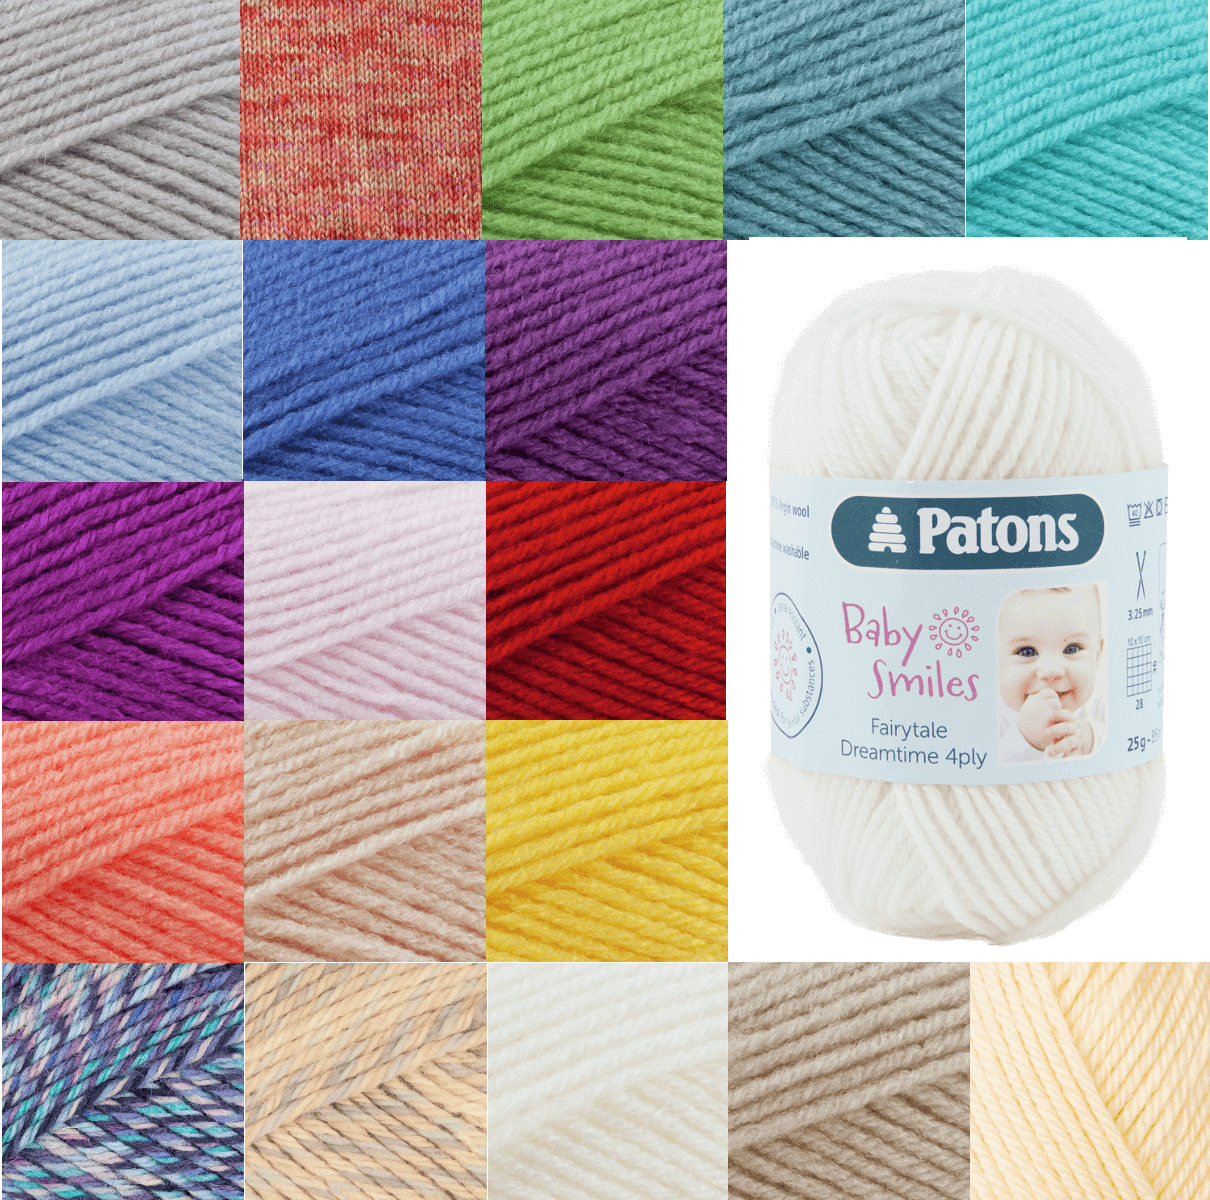 Patons Fairytale Dreamtime 100% Wool 4 Ply Knit Yarn Craft Wool 25g Ball 1005 Beige